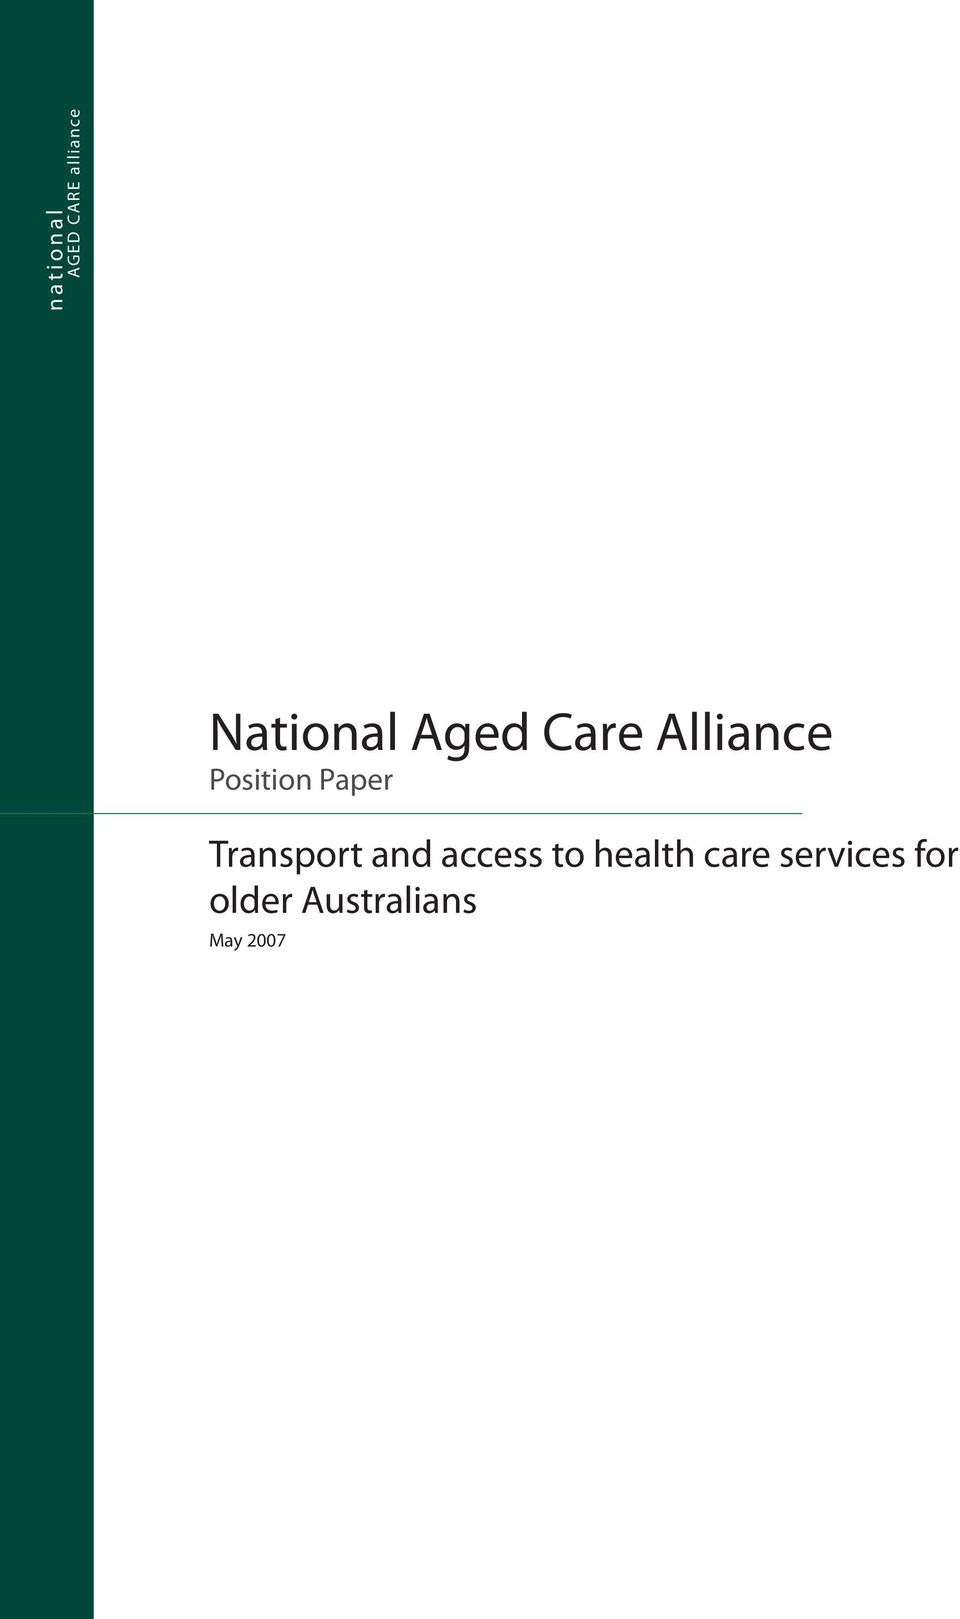 Paper Transport and access to health